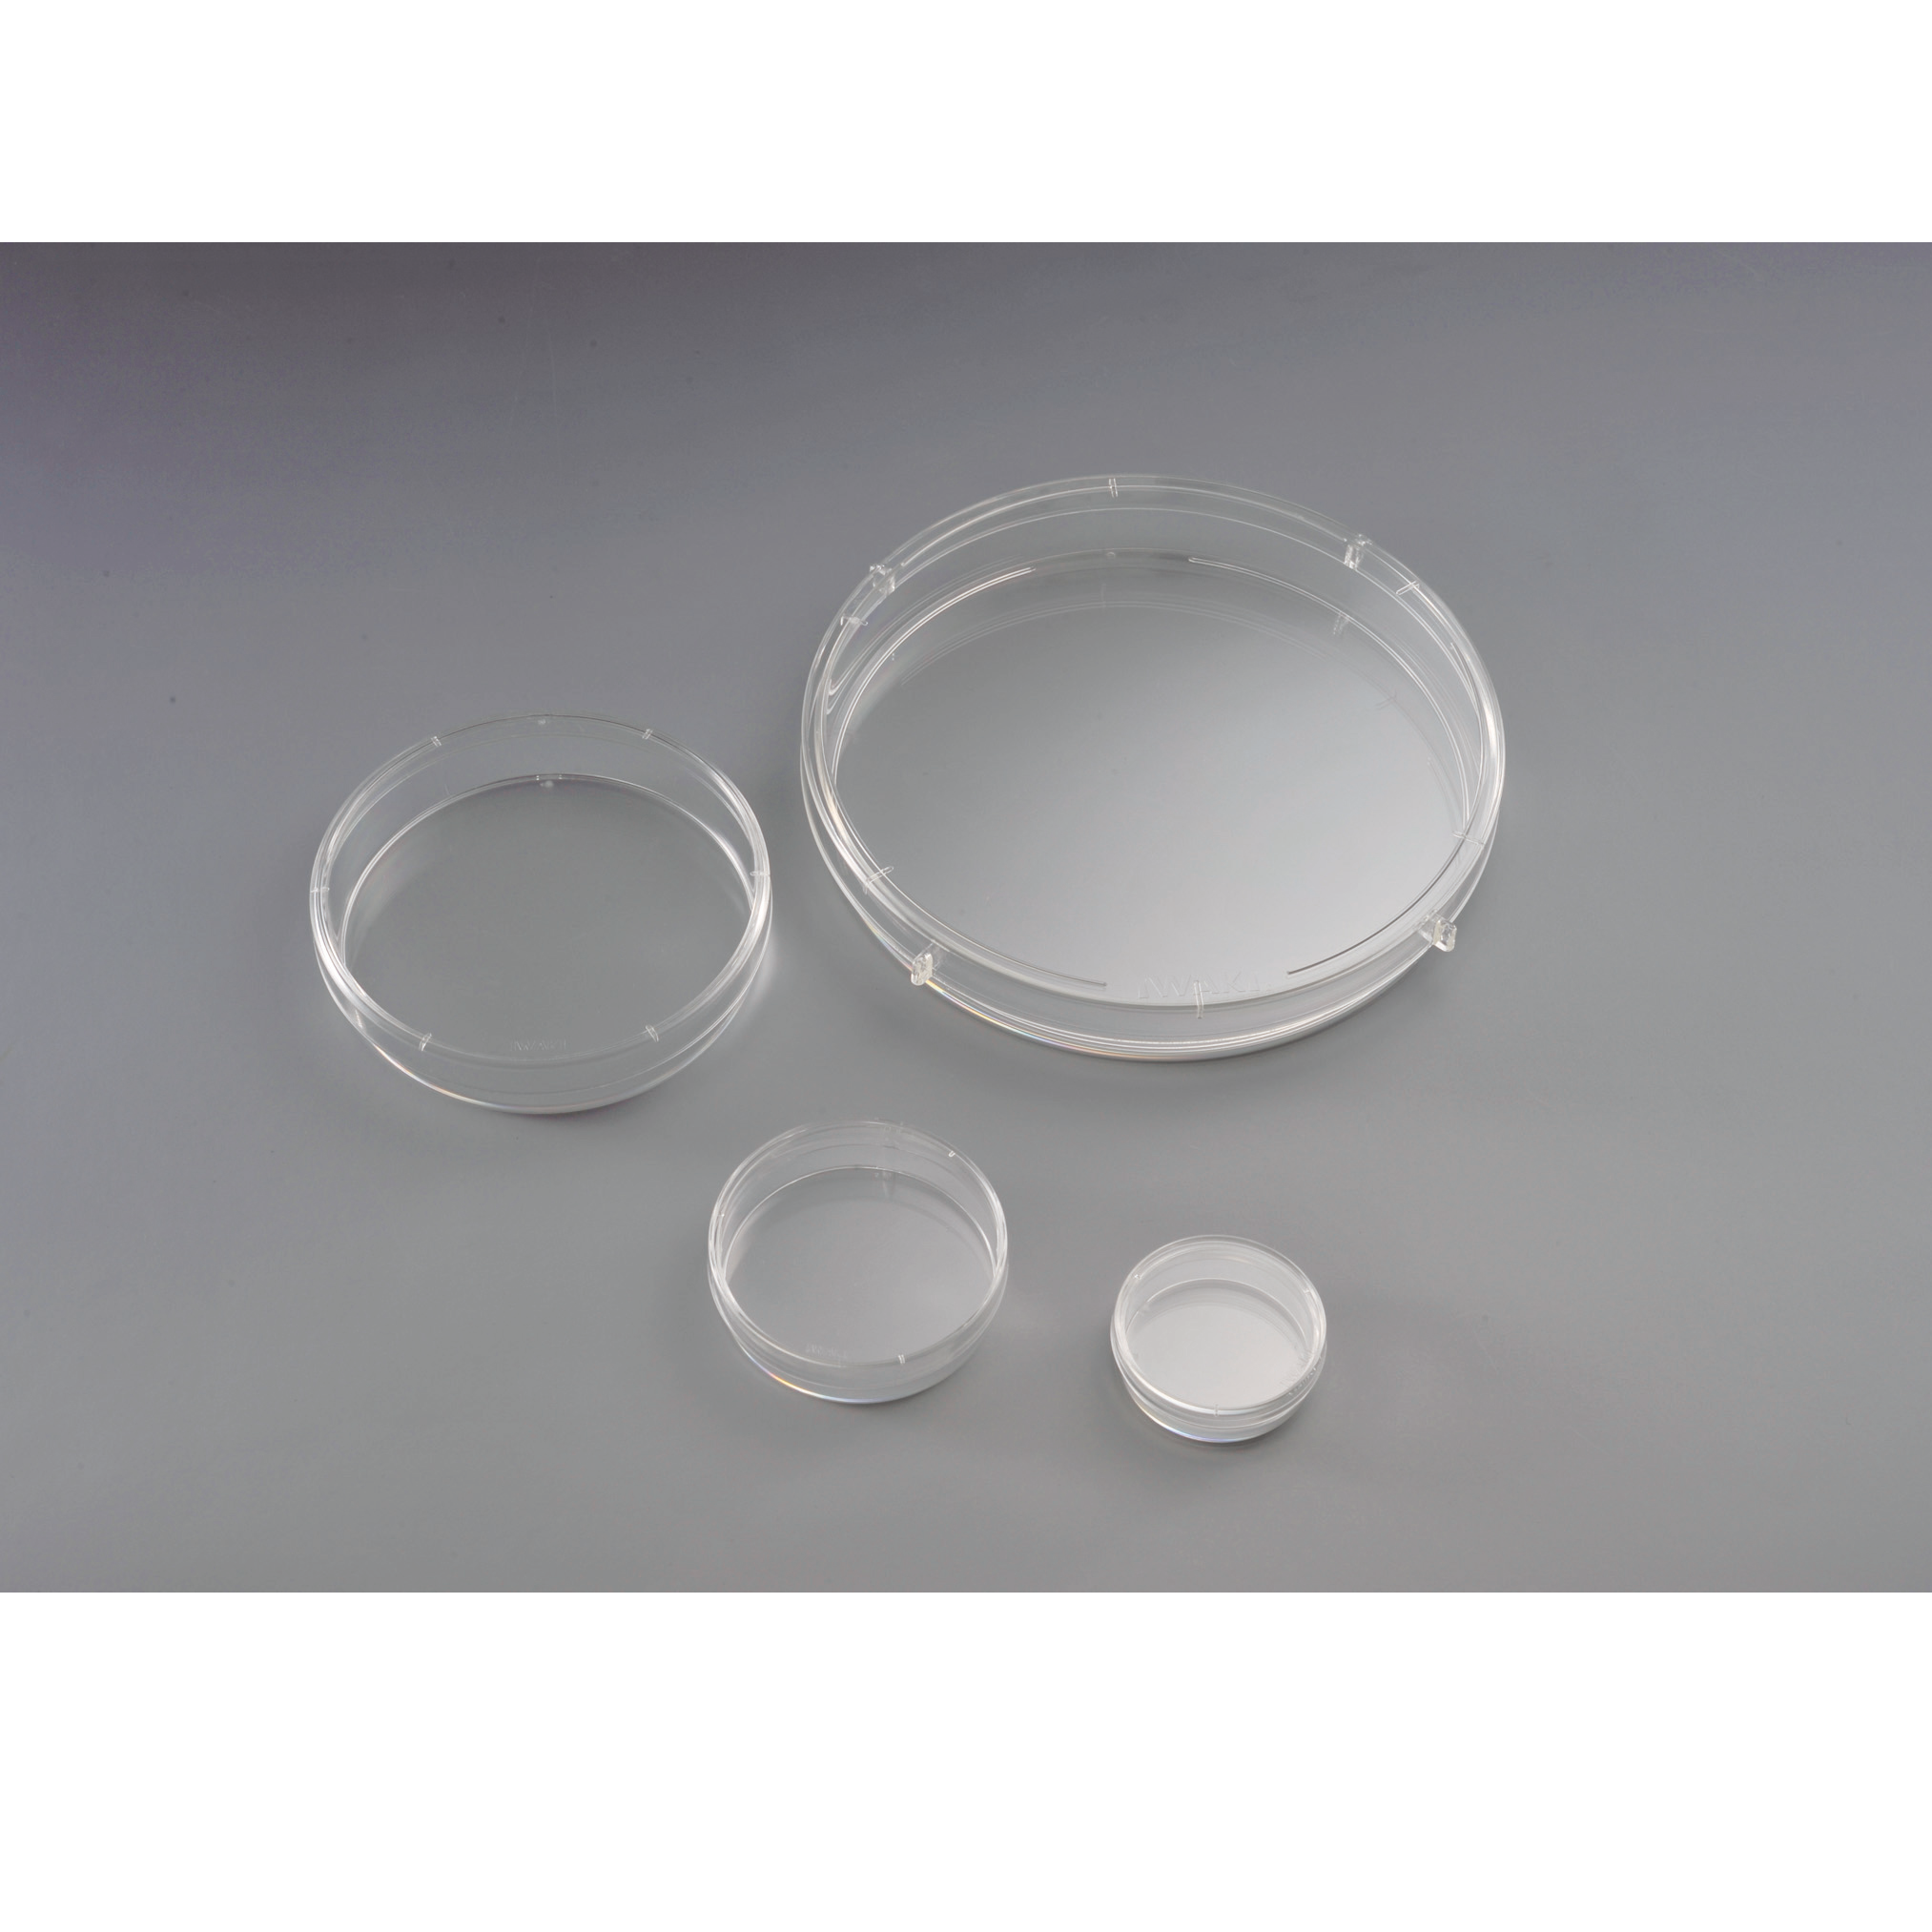 Japan cell culture dish medium plate offers various cell culture surfaces